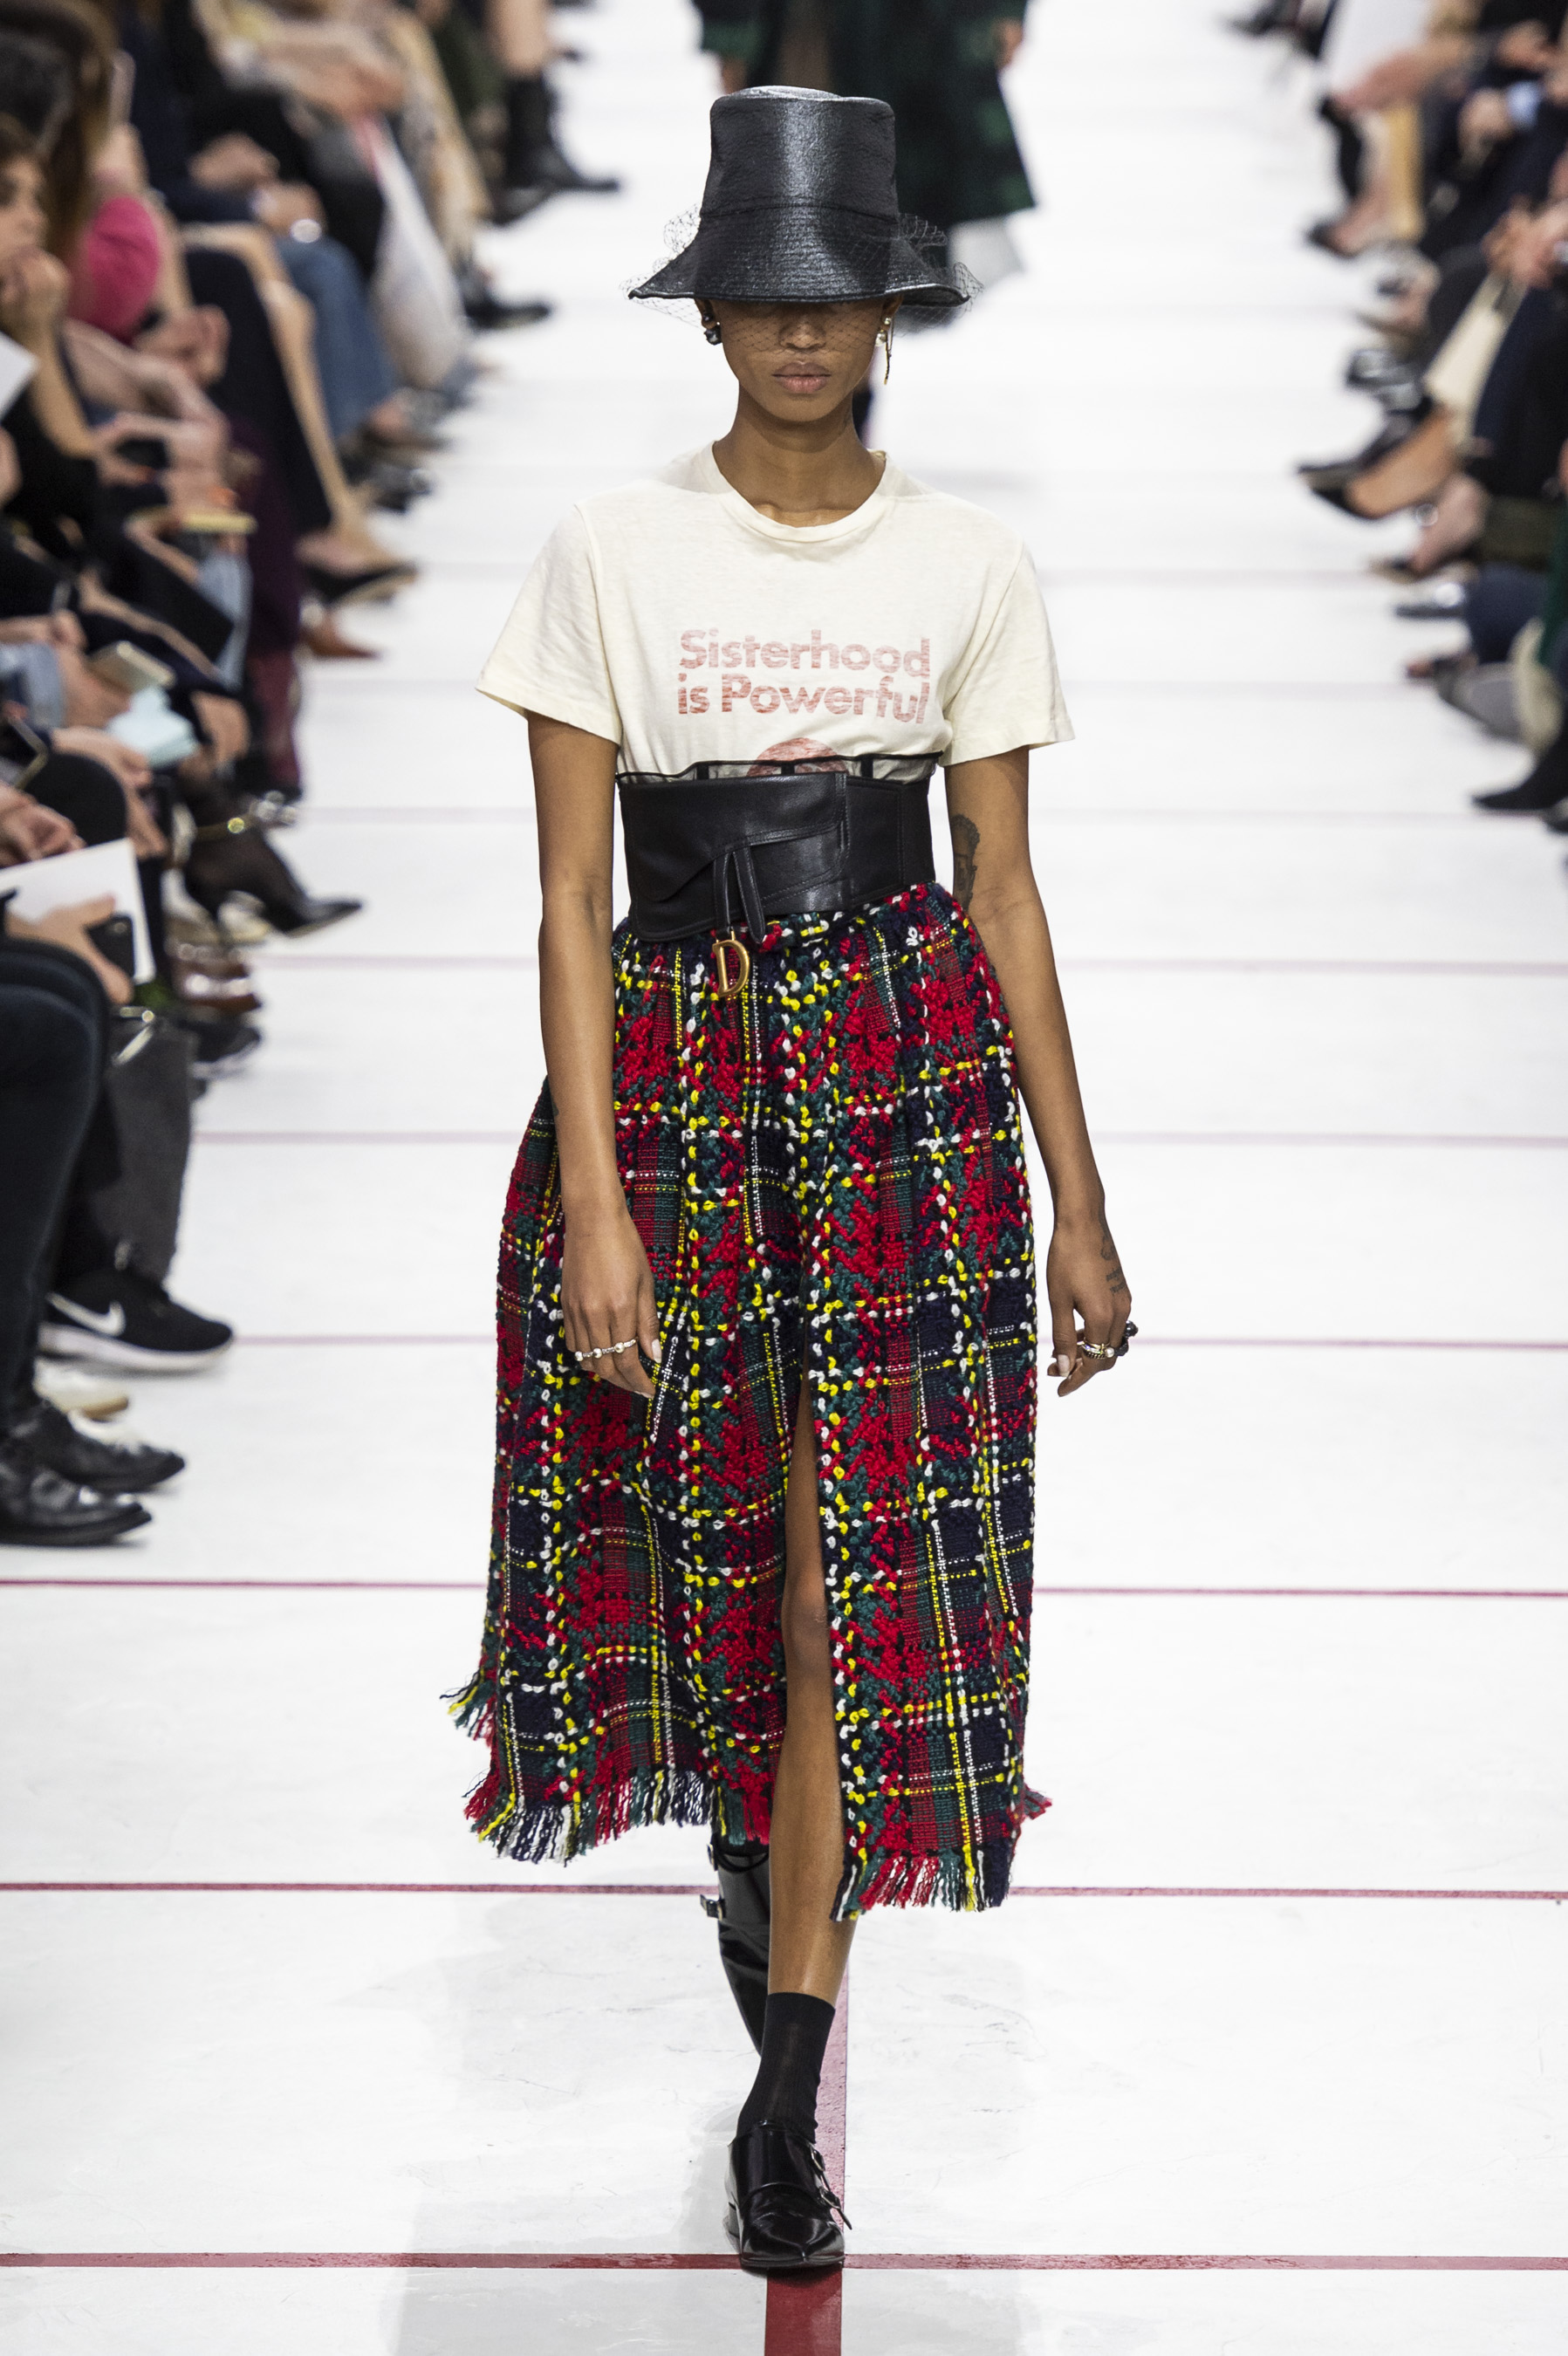 Top 10 Fashion Shows of the Fall 2019 Season